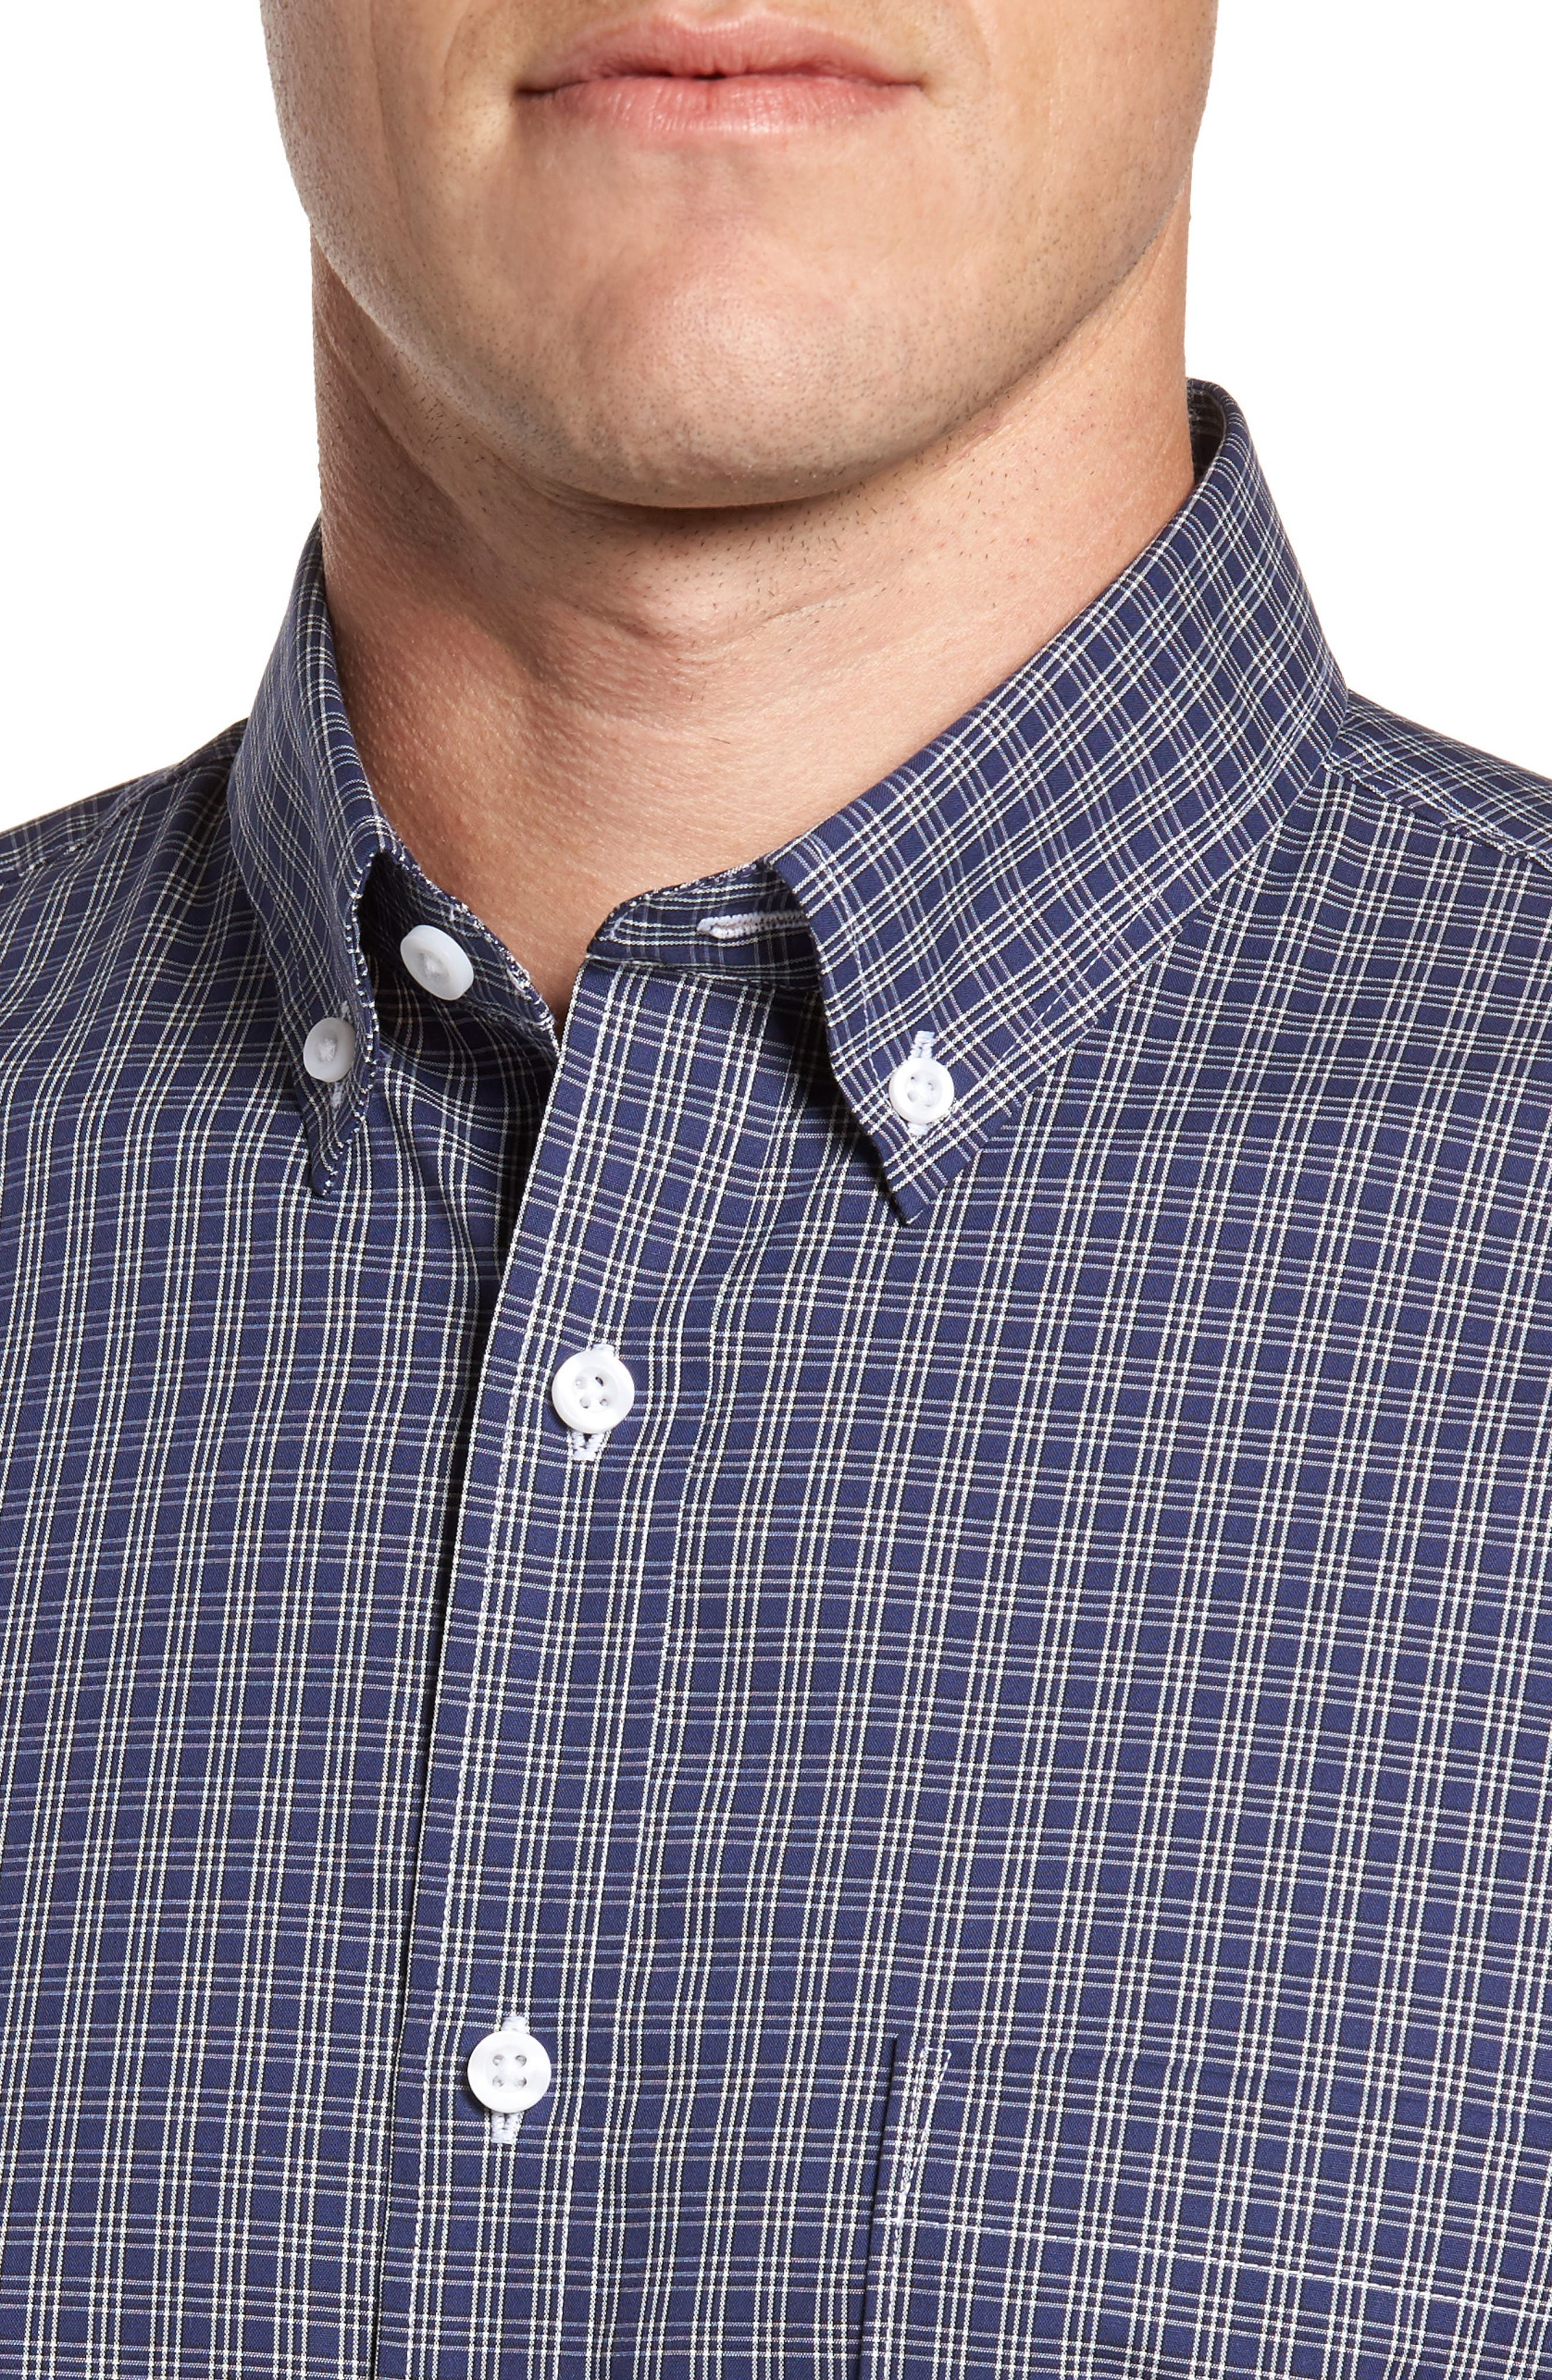 Regular Fit Non-Iron Mini Check Sport Shirt,                             Alternate thumbnail 4, color,                             410